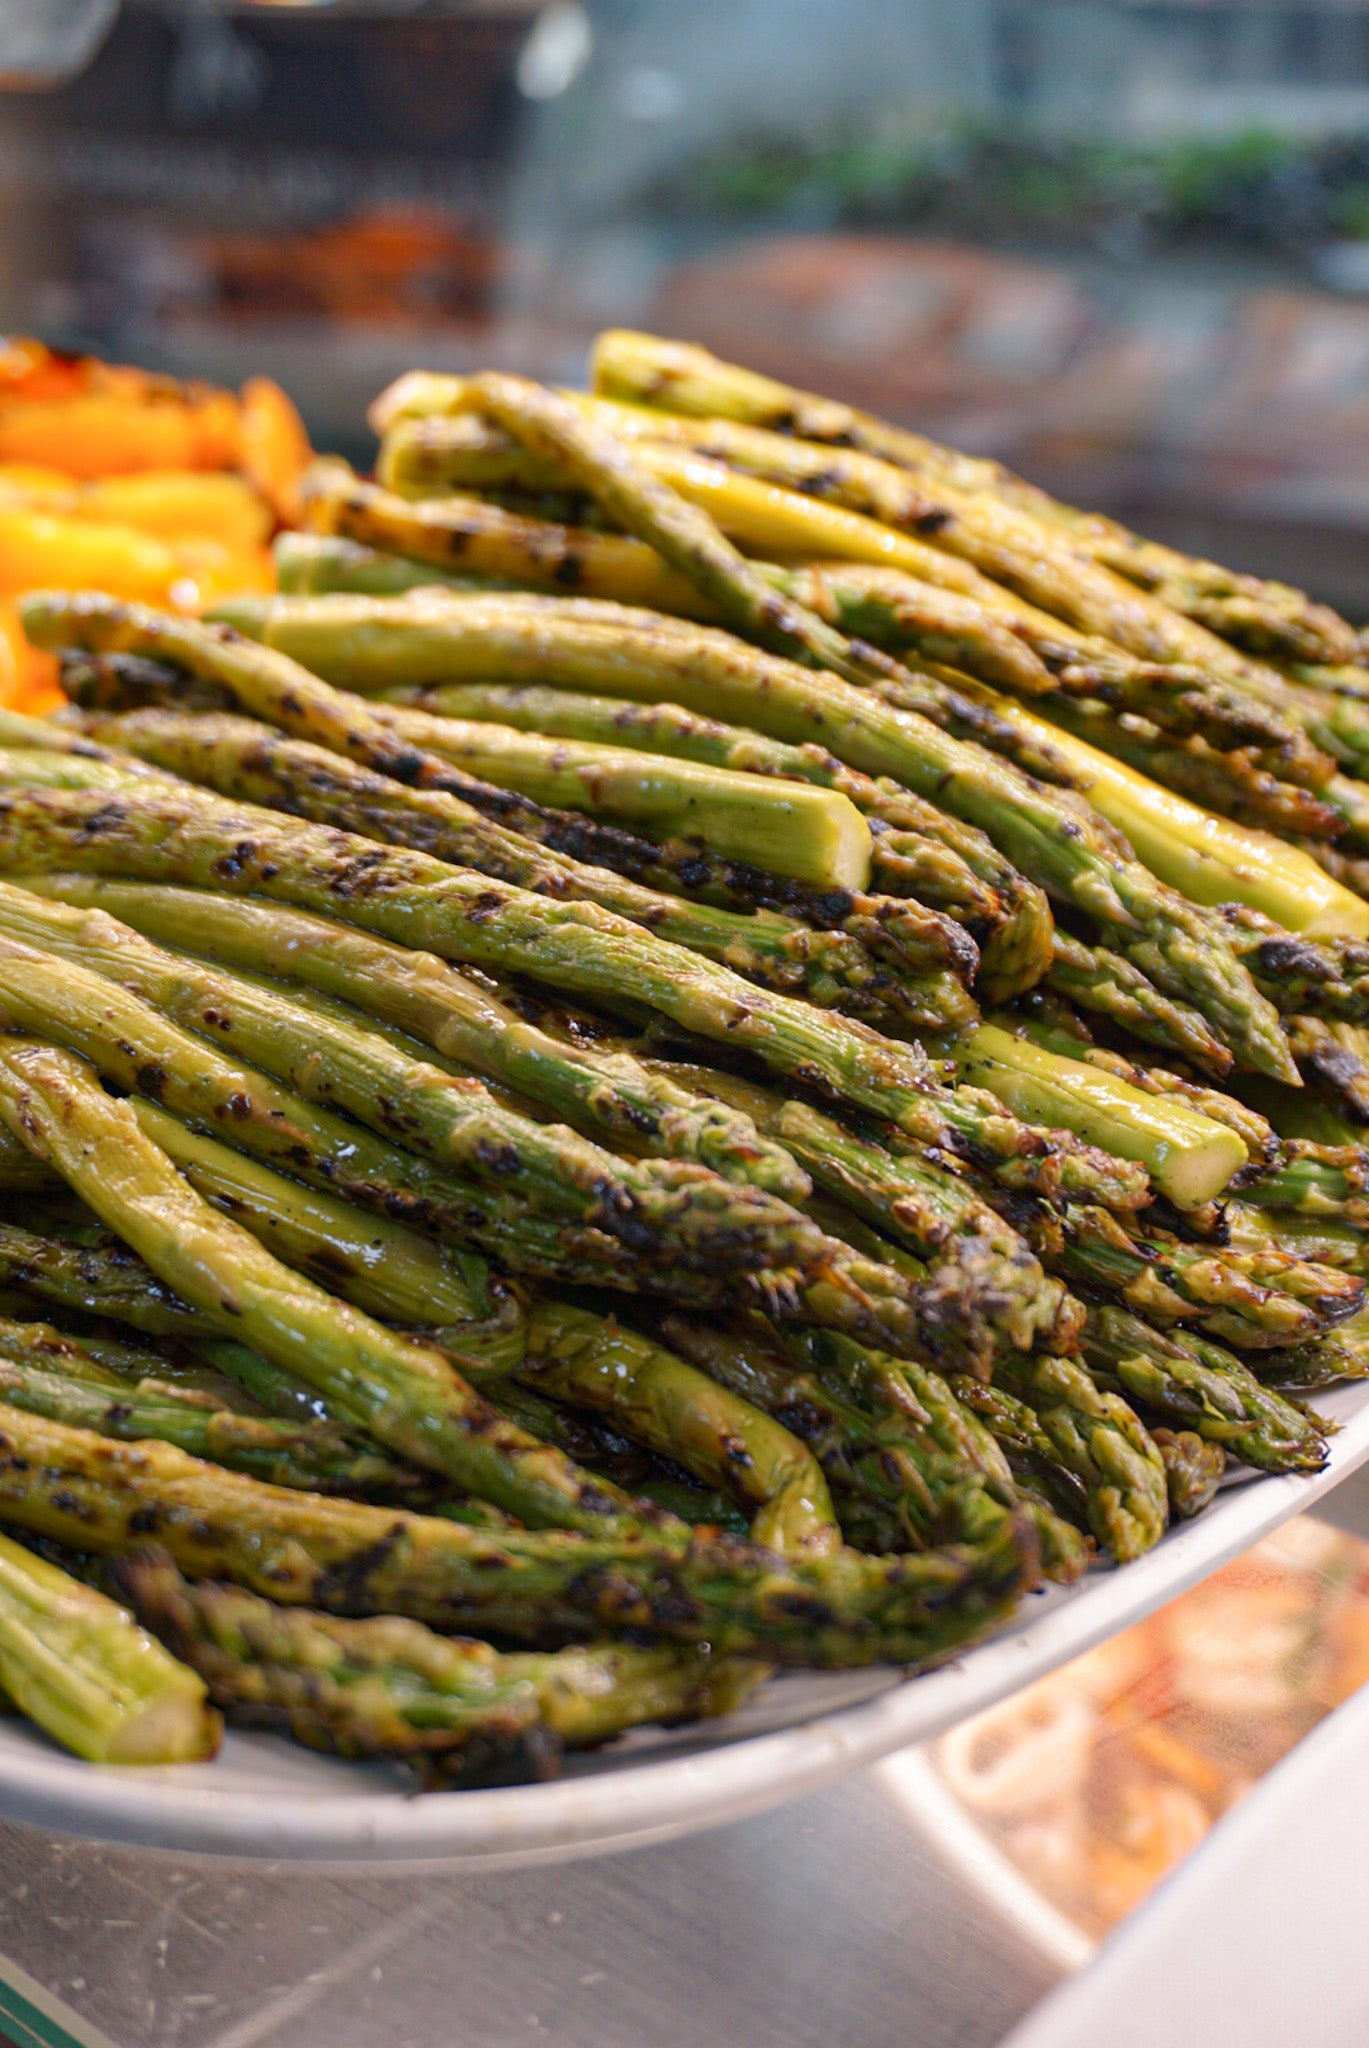 Grilled Asparagus - Delivery